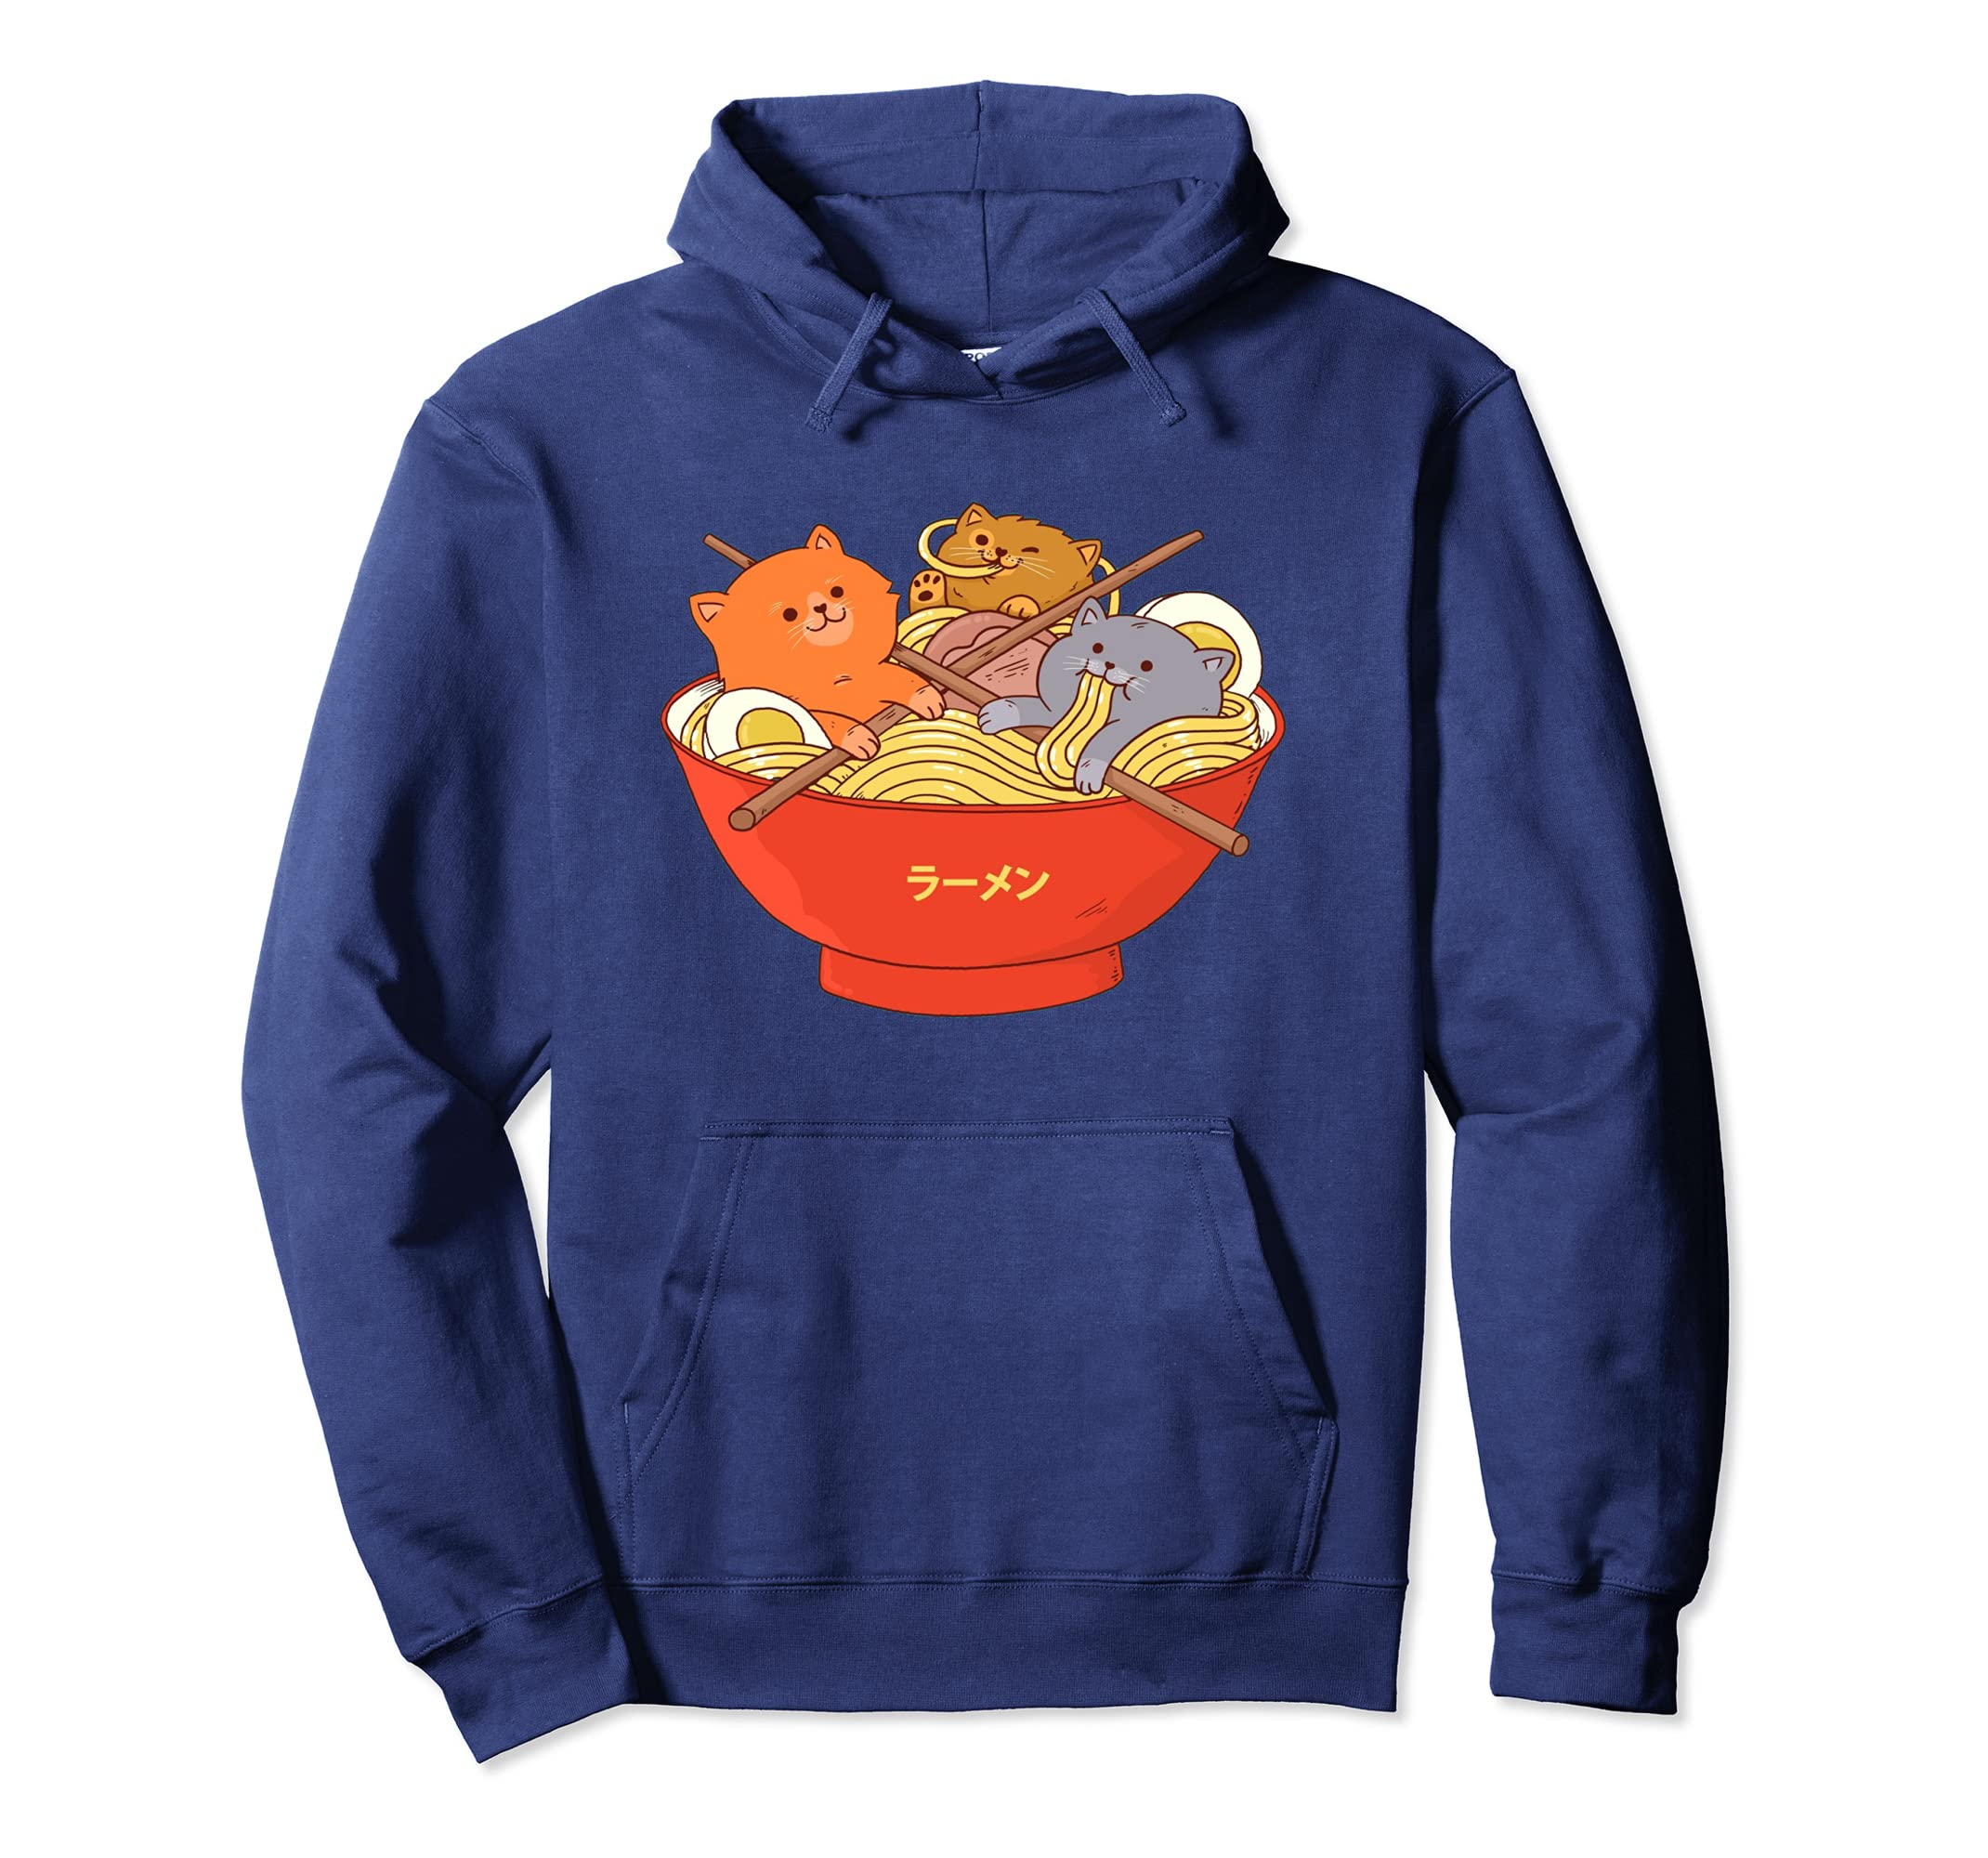 2f5c042e436a Amazon.com: Kawaii Anime Cat Hoodie Japanese Ramen Noodle Hooded Sweater:  Clothing